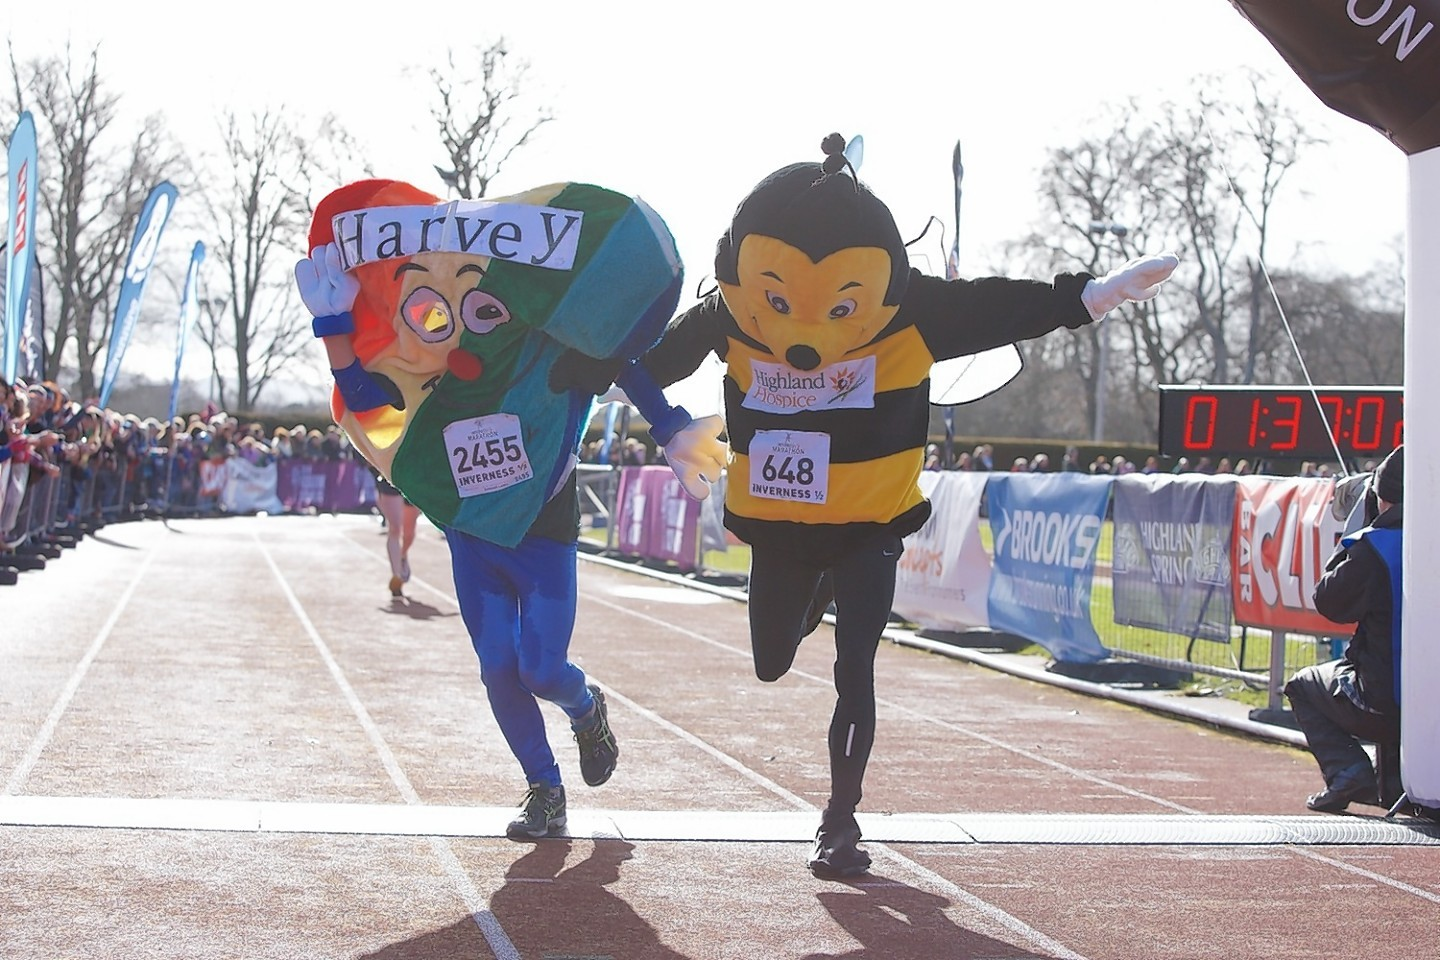 Harvet the Heart and Bobby the Bee cross the finishing line